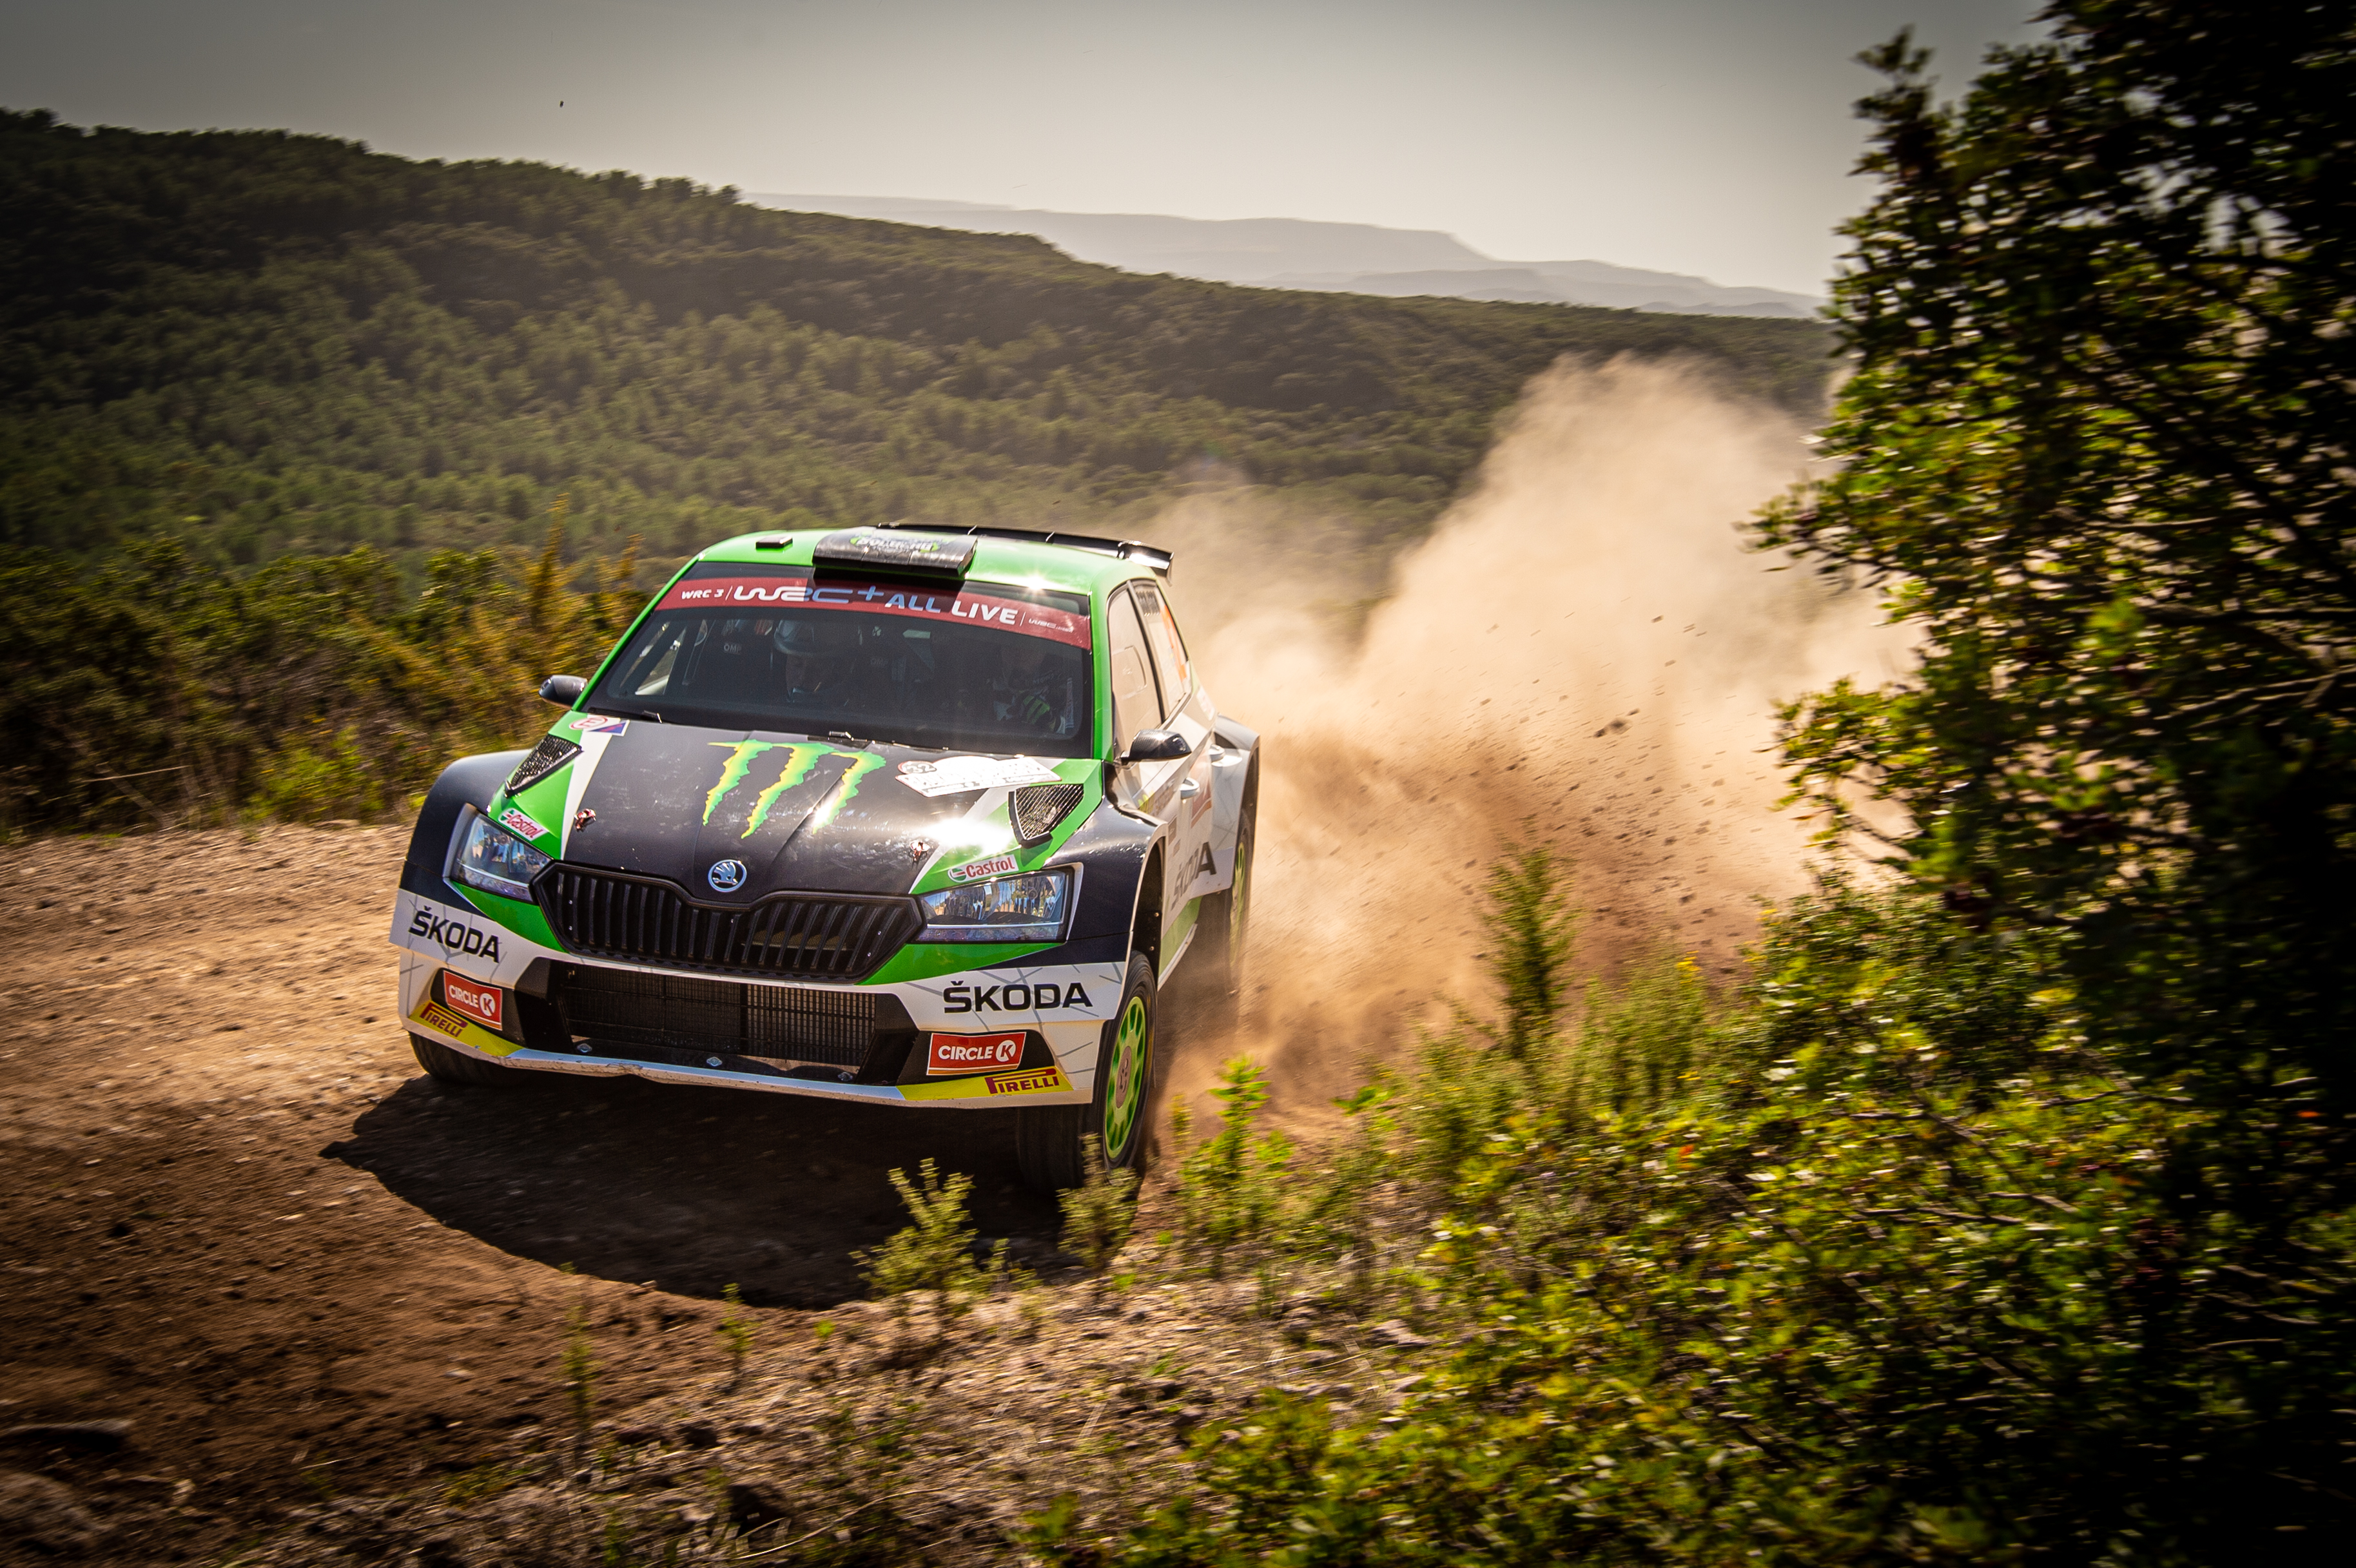 Rally Italia Sardegna: Two SKODA crews on top of WRC2 and WRC3 after tough first leg - Image 6